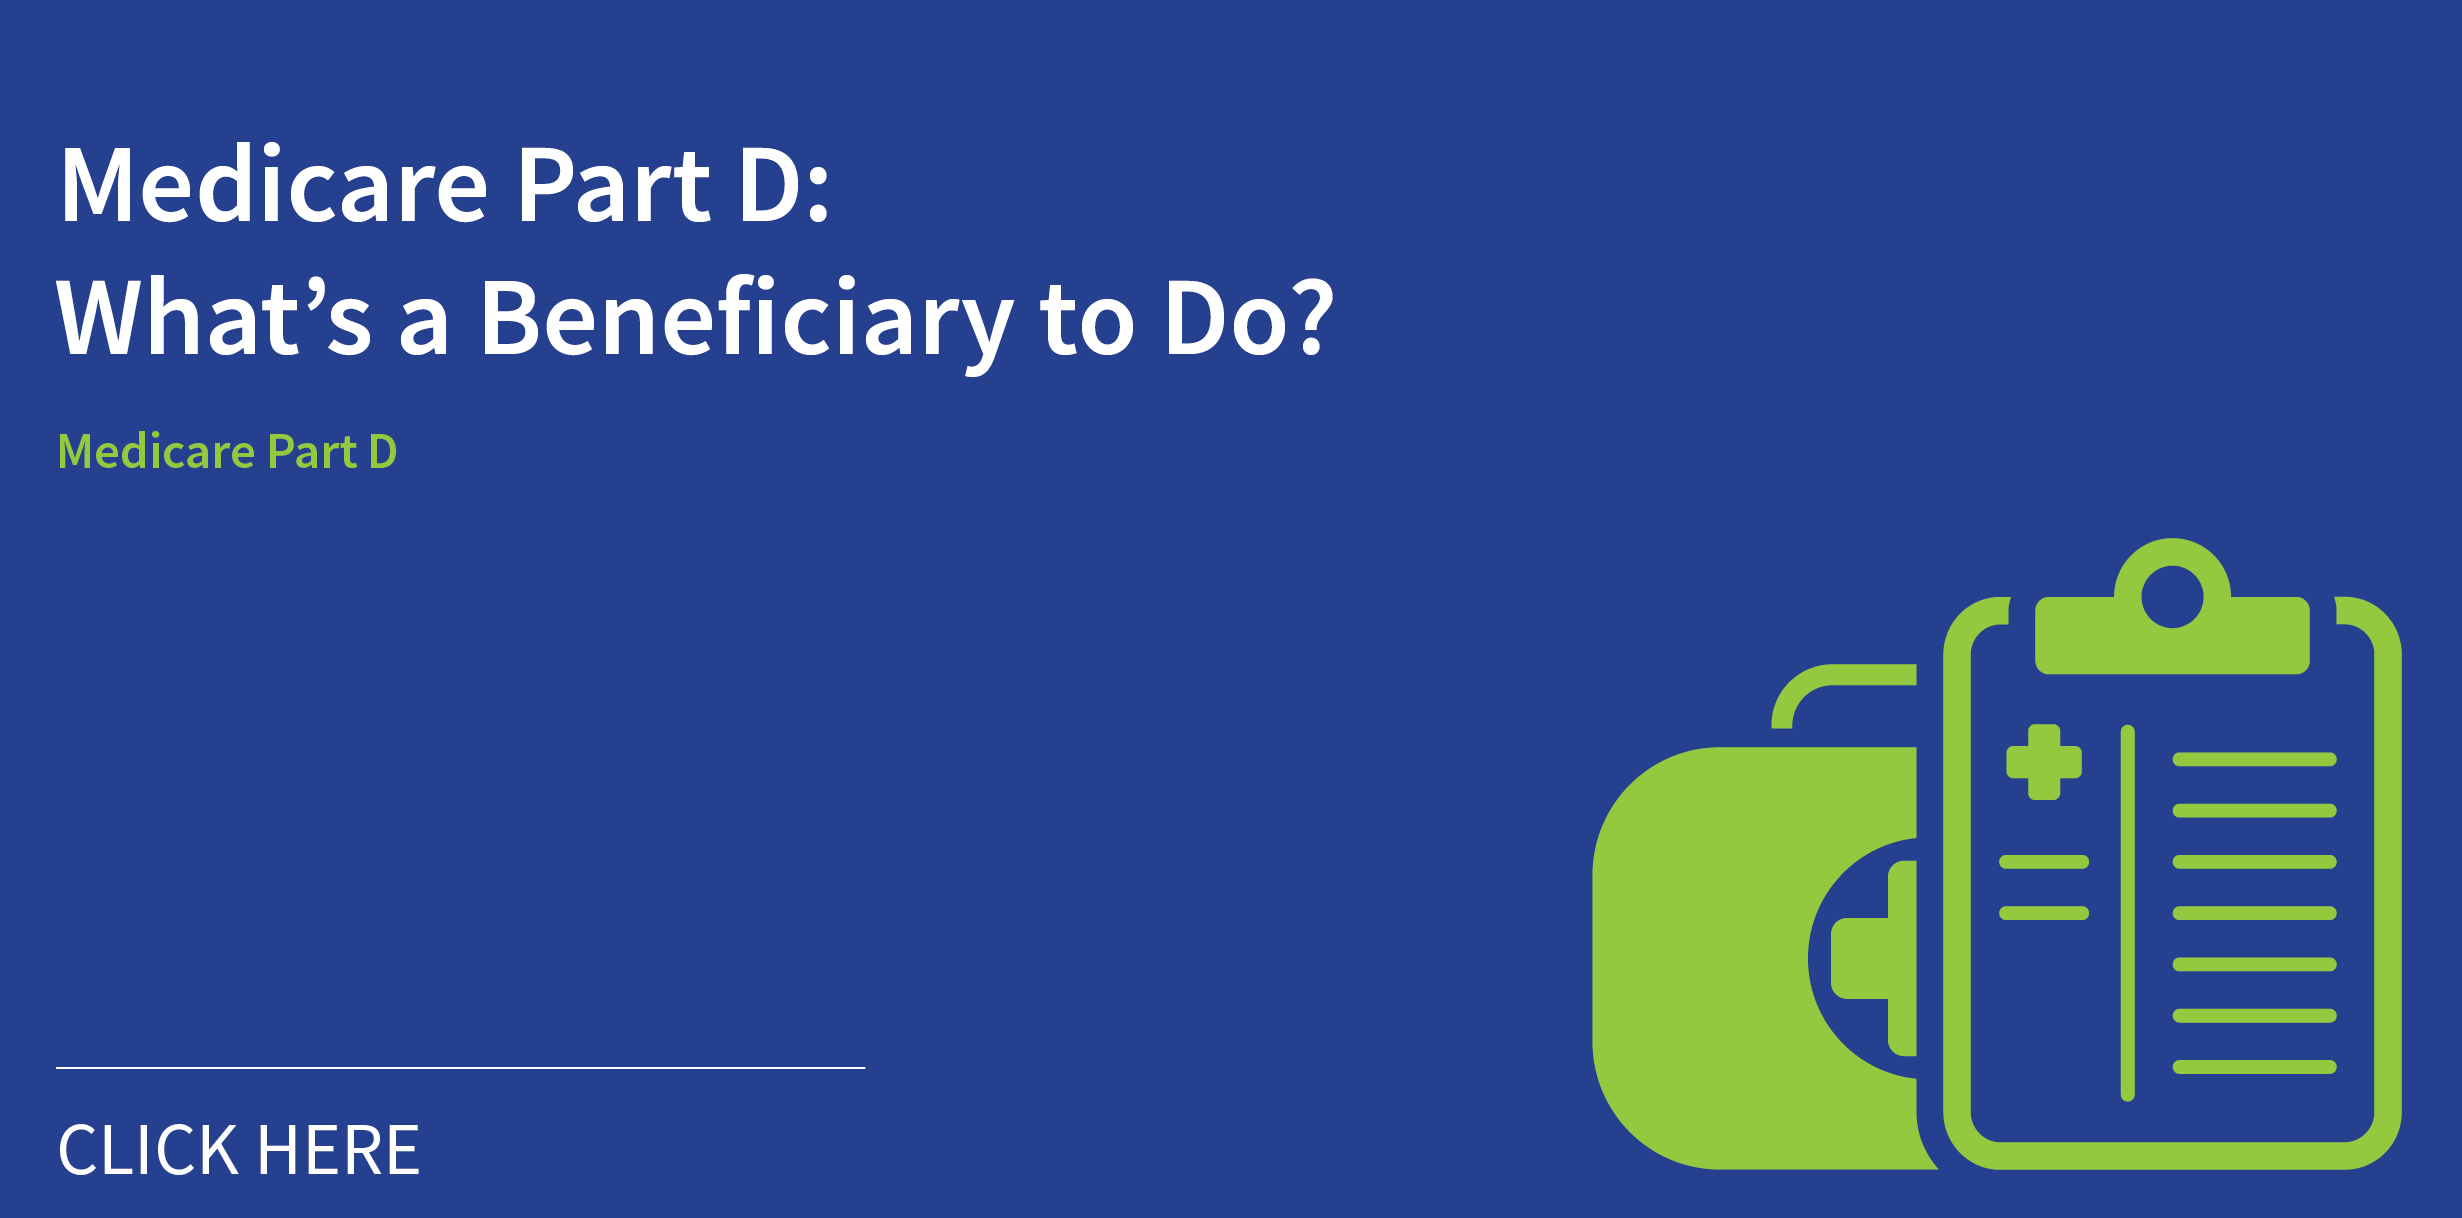 Medicare Part D Beneficiary